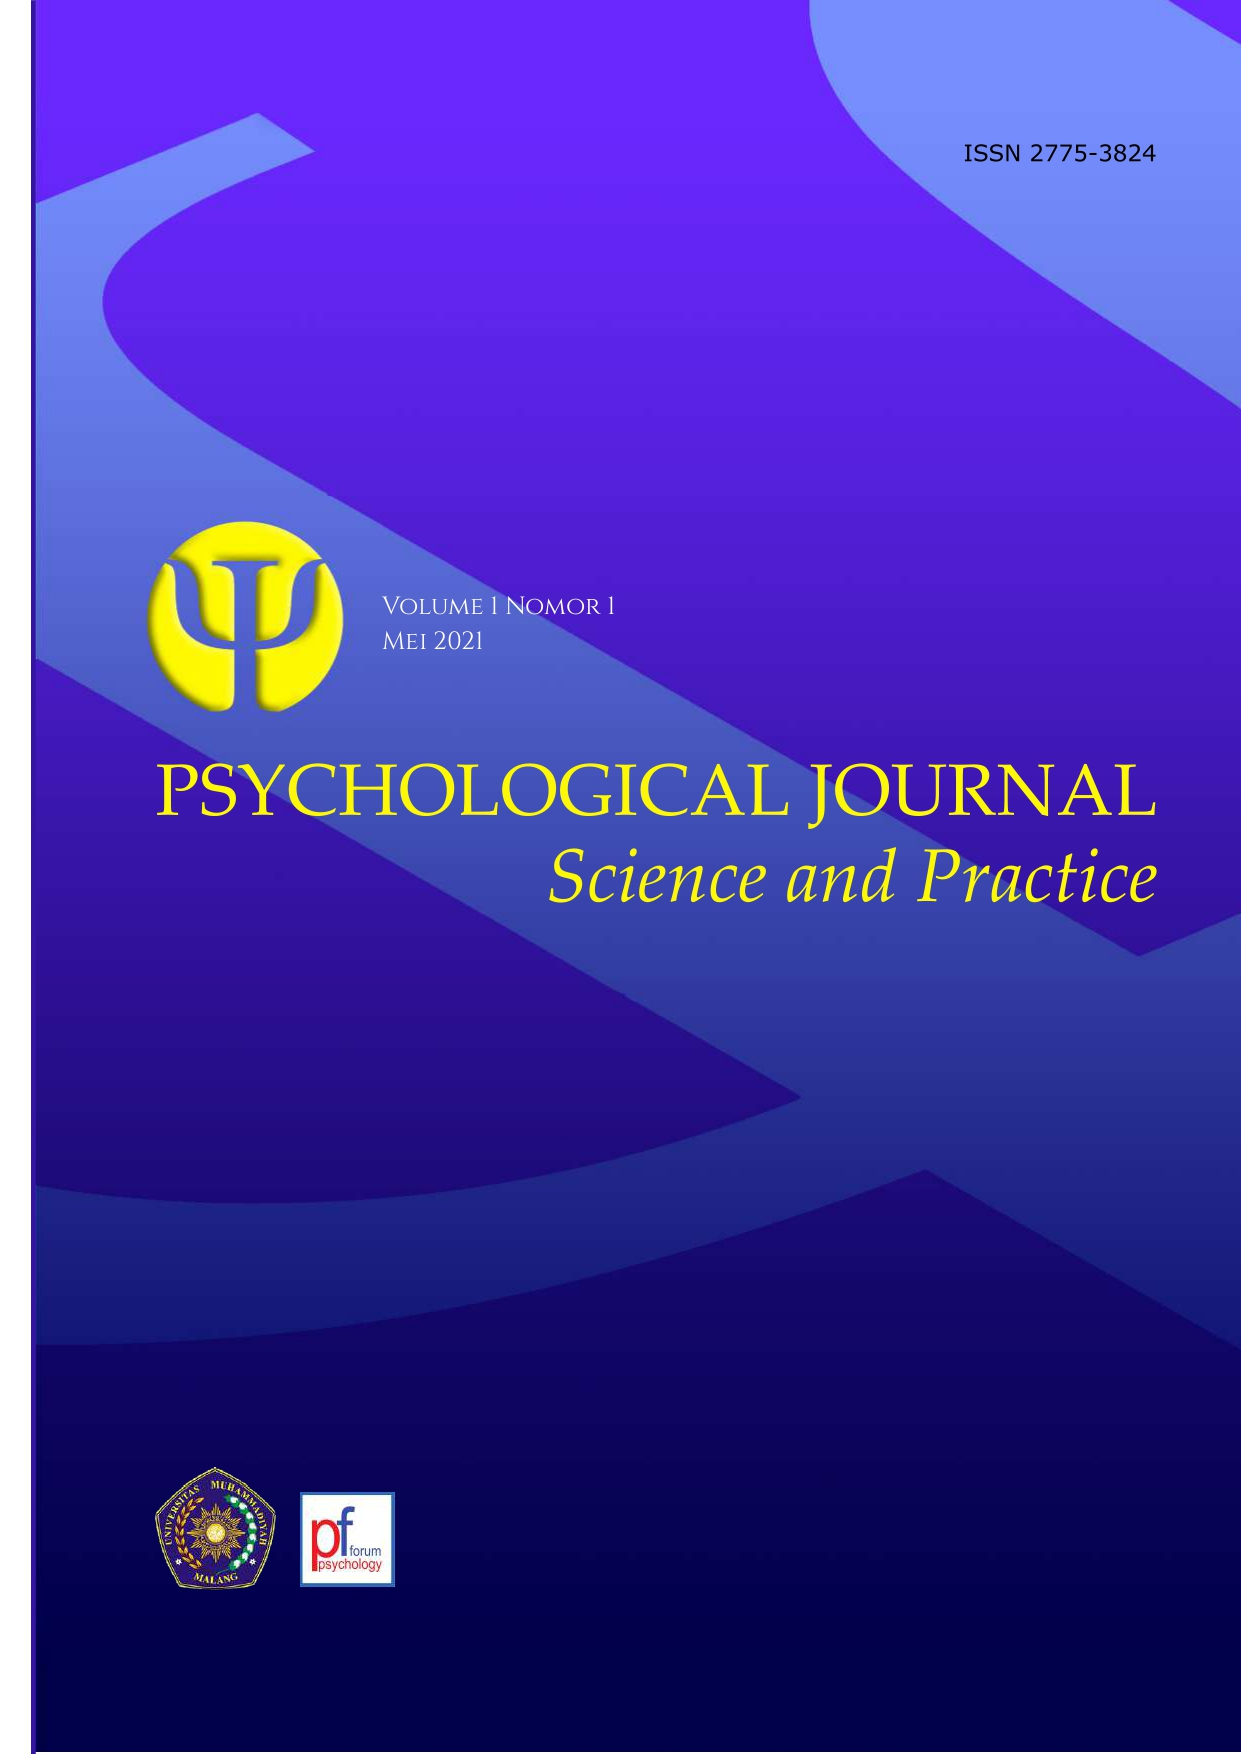 View Vol. 1 No. 1 (2021): Psychological Journal: Science and Practice